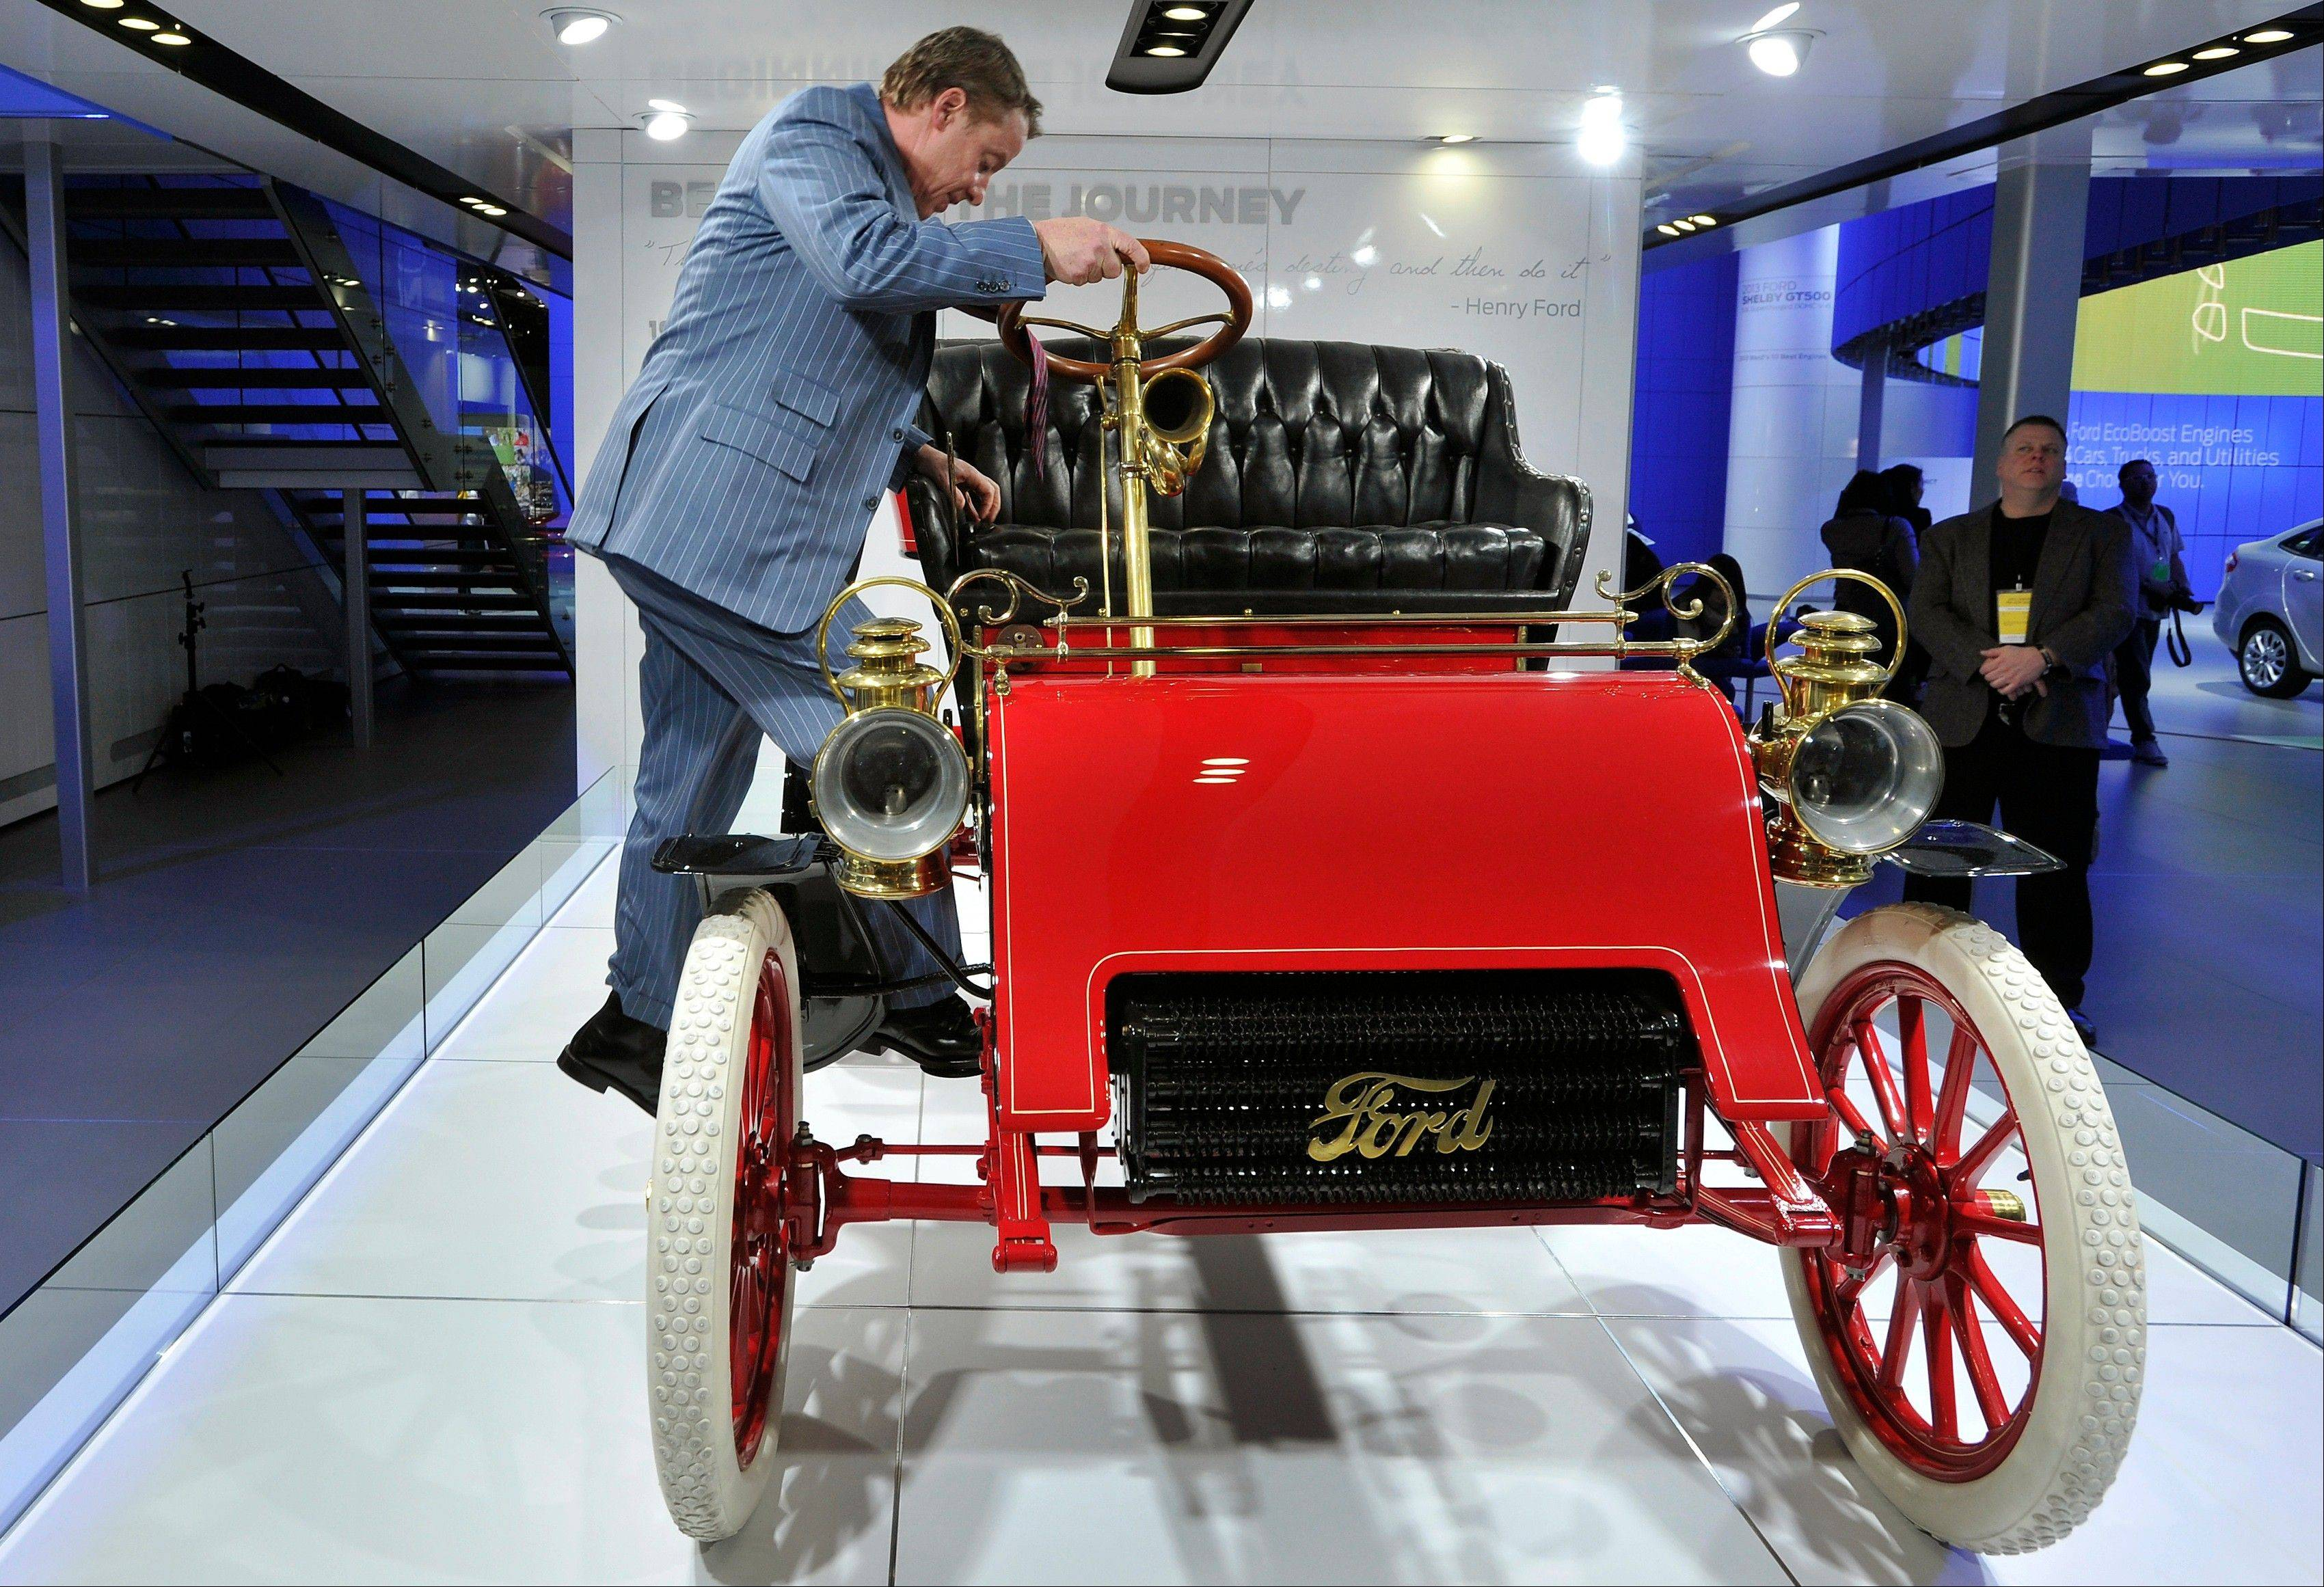 Ford Motor Companys Executive Chairman William Clay Ford Jr. climbs into a 1903 Model A, the oldest surviving Ford Car, displayed at the Ford exhibit at the North American International Auto Show at Cobo Center in Detroit, on Tuesday, Jan. 15, 2013.